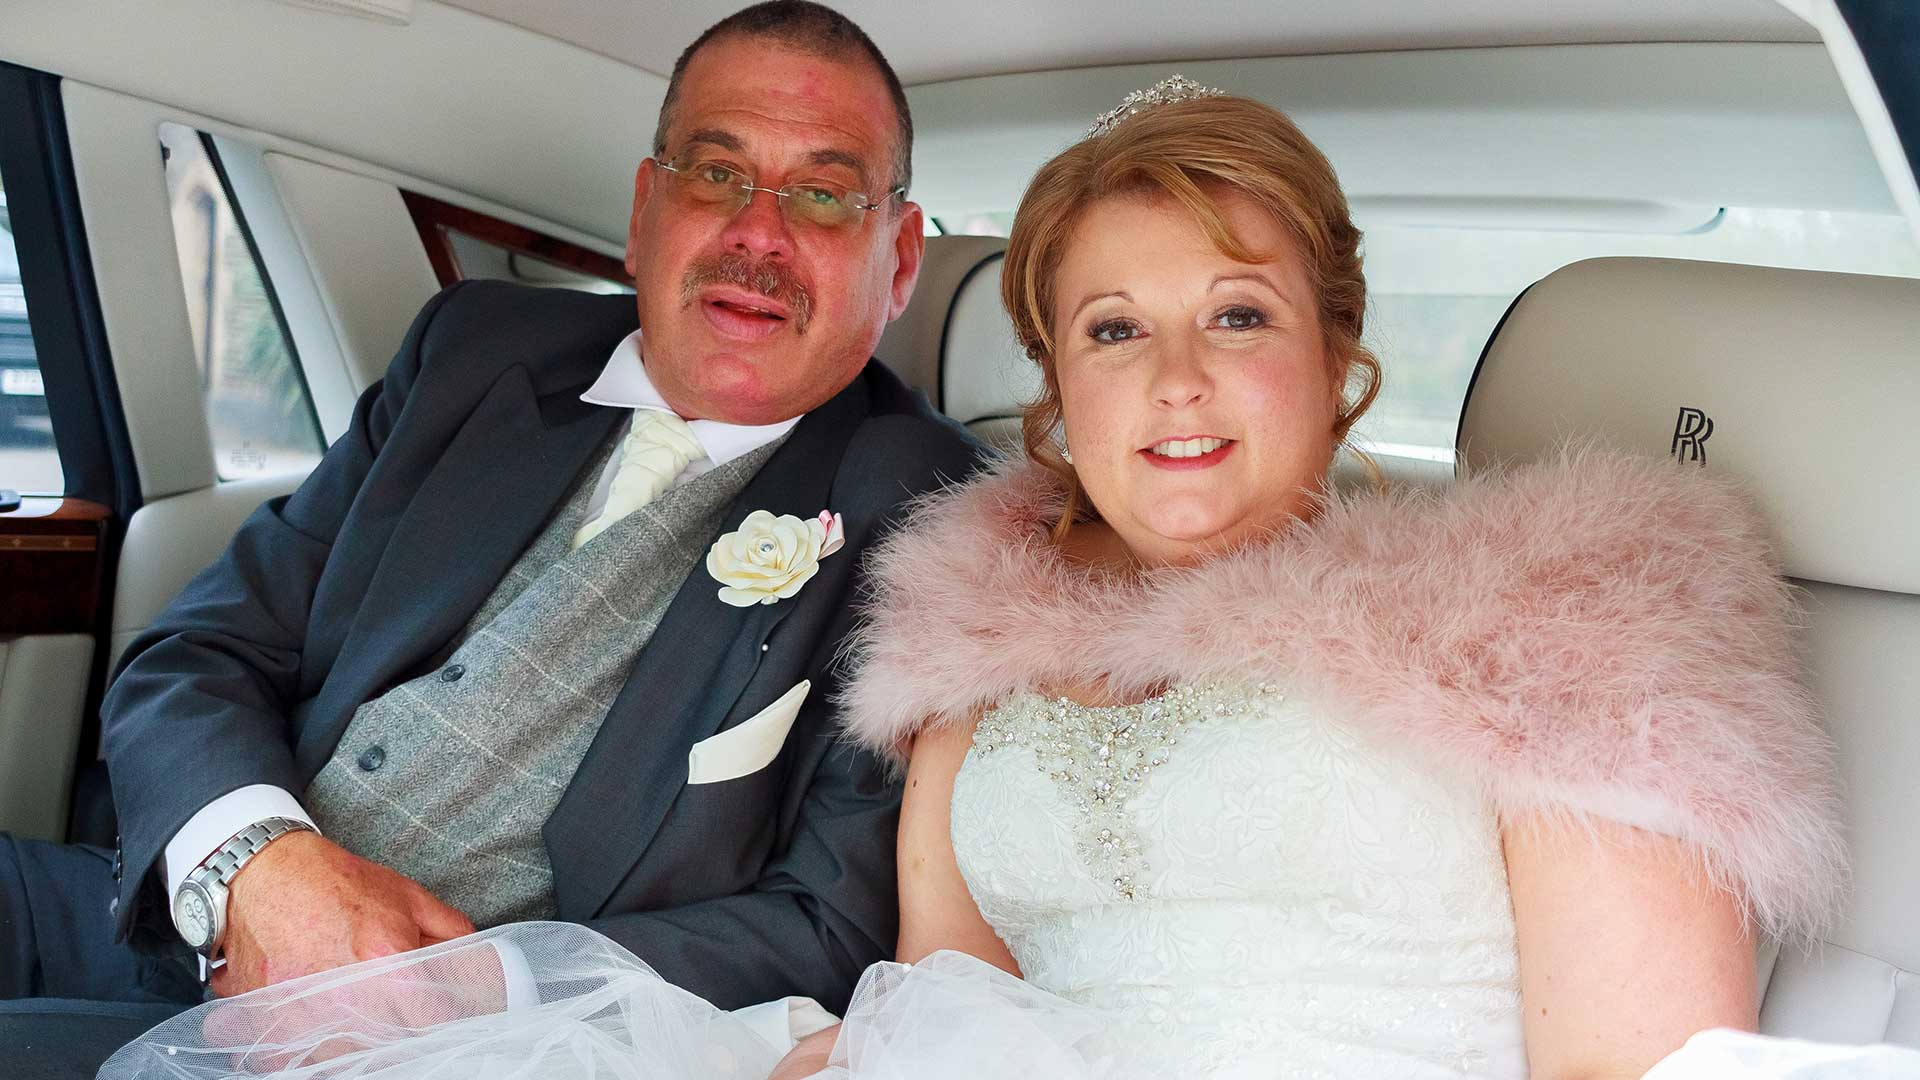 Mr and Mrs Cooney in the Rolls-Royce Phantom